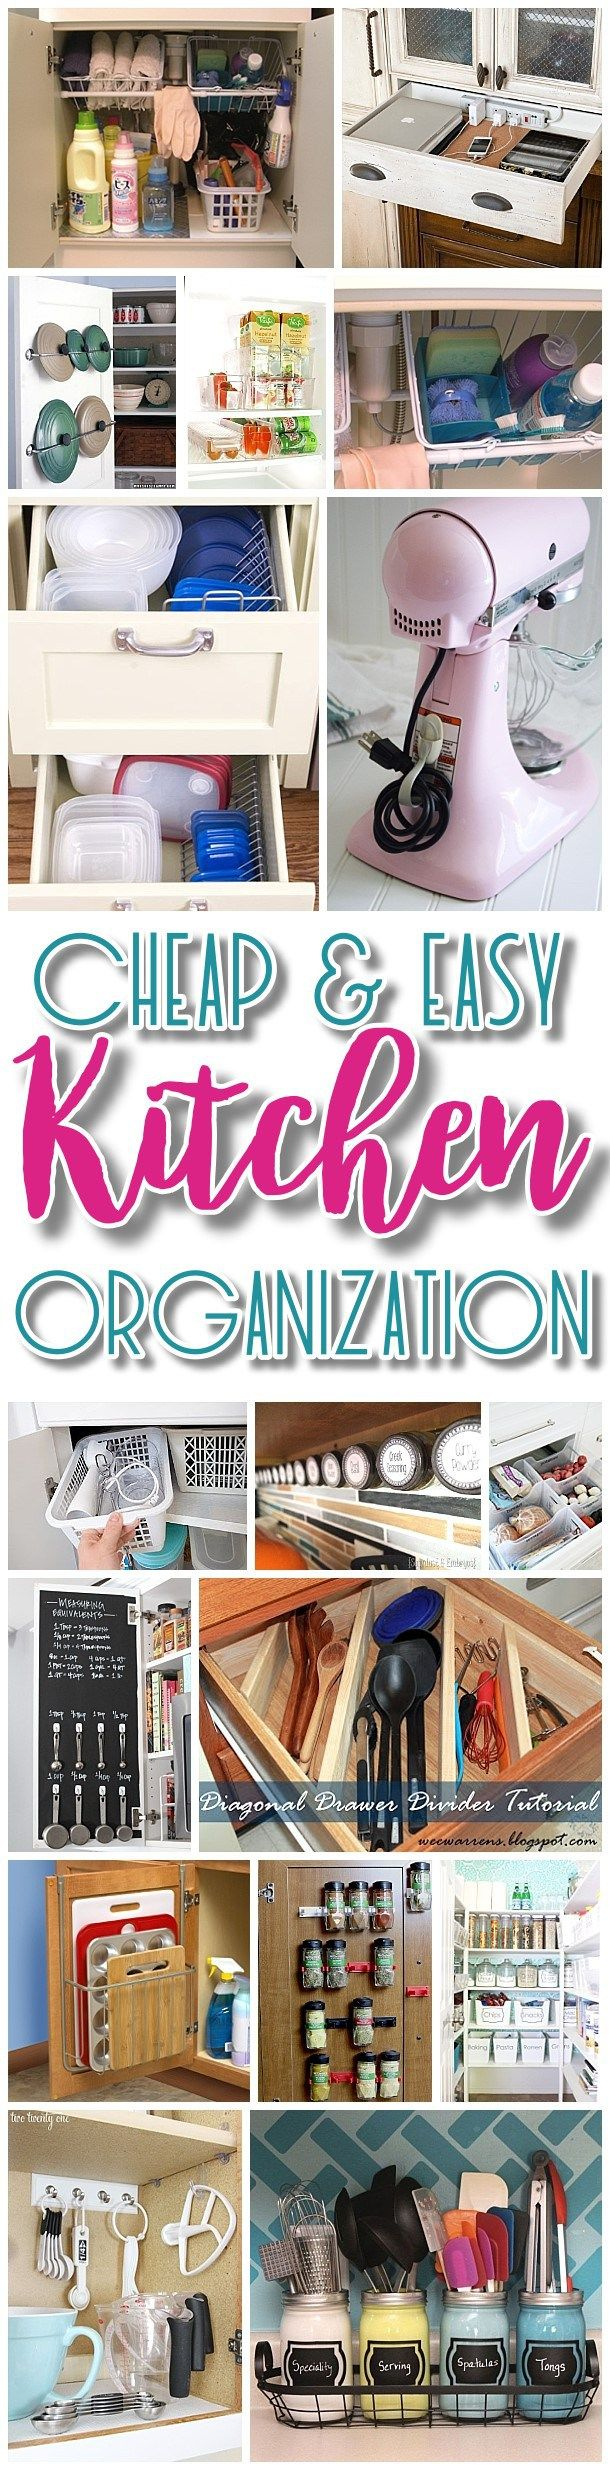 15 clever and inexpensive drawer organization ideas organization 15 clever and inexpensive drawer organization ideas organization ideas organizations and organizing